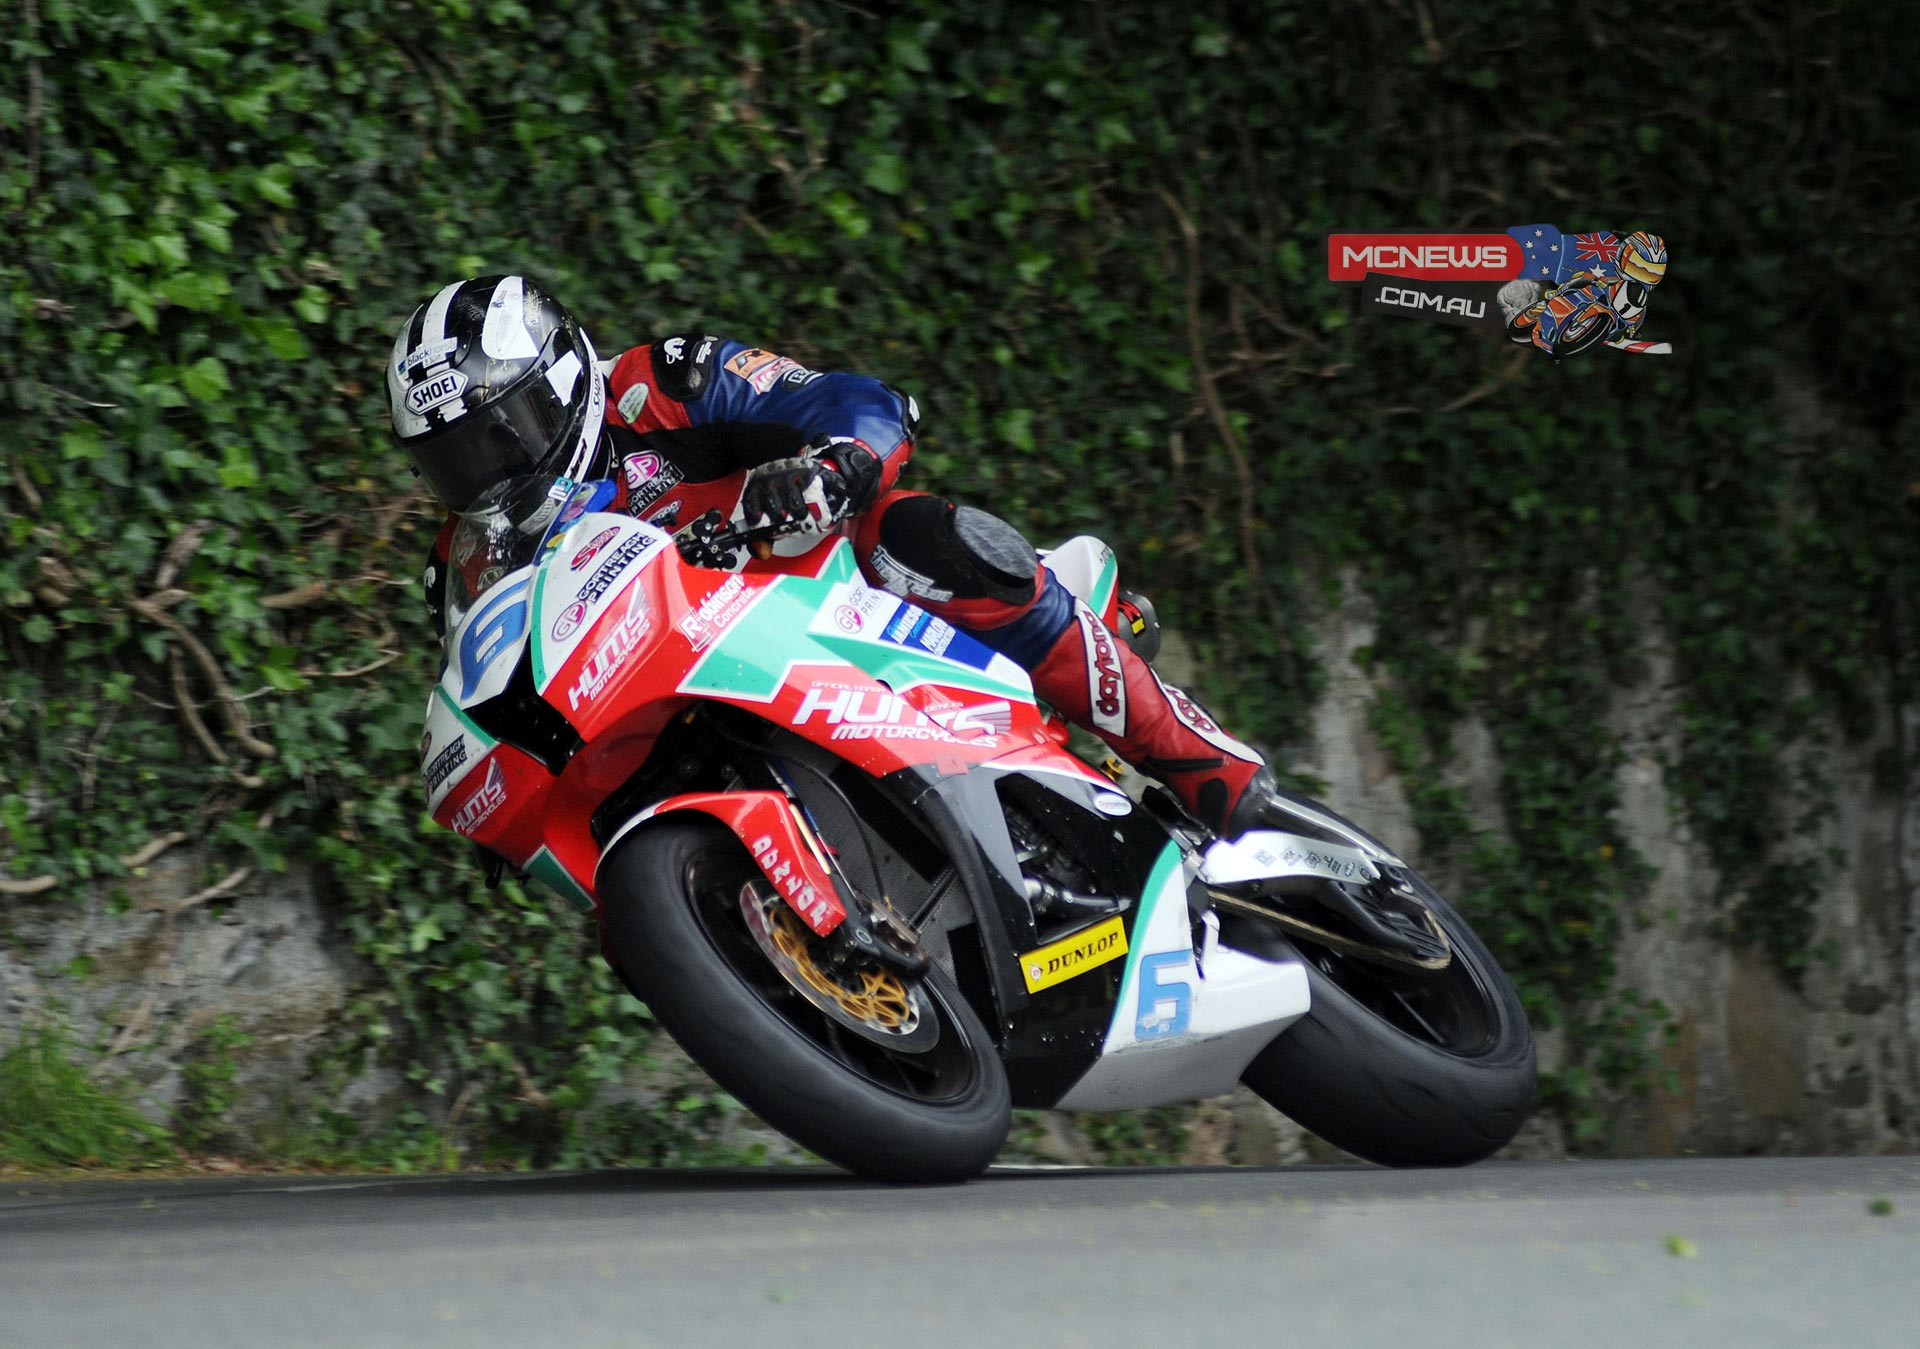 The results mean Michael Dunlop is now a clear leader in the Joey Dunlop TT Championship on 91 points followed by Anstey (69) and Harrison (54). Anstey needs to win Friday's Senior to have any chance of overhauling Dunlop.